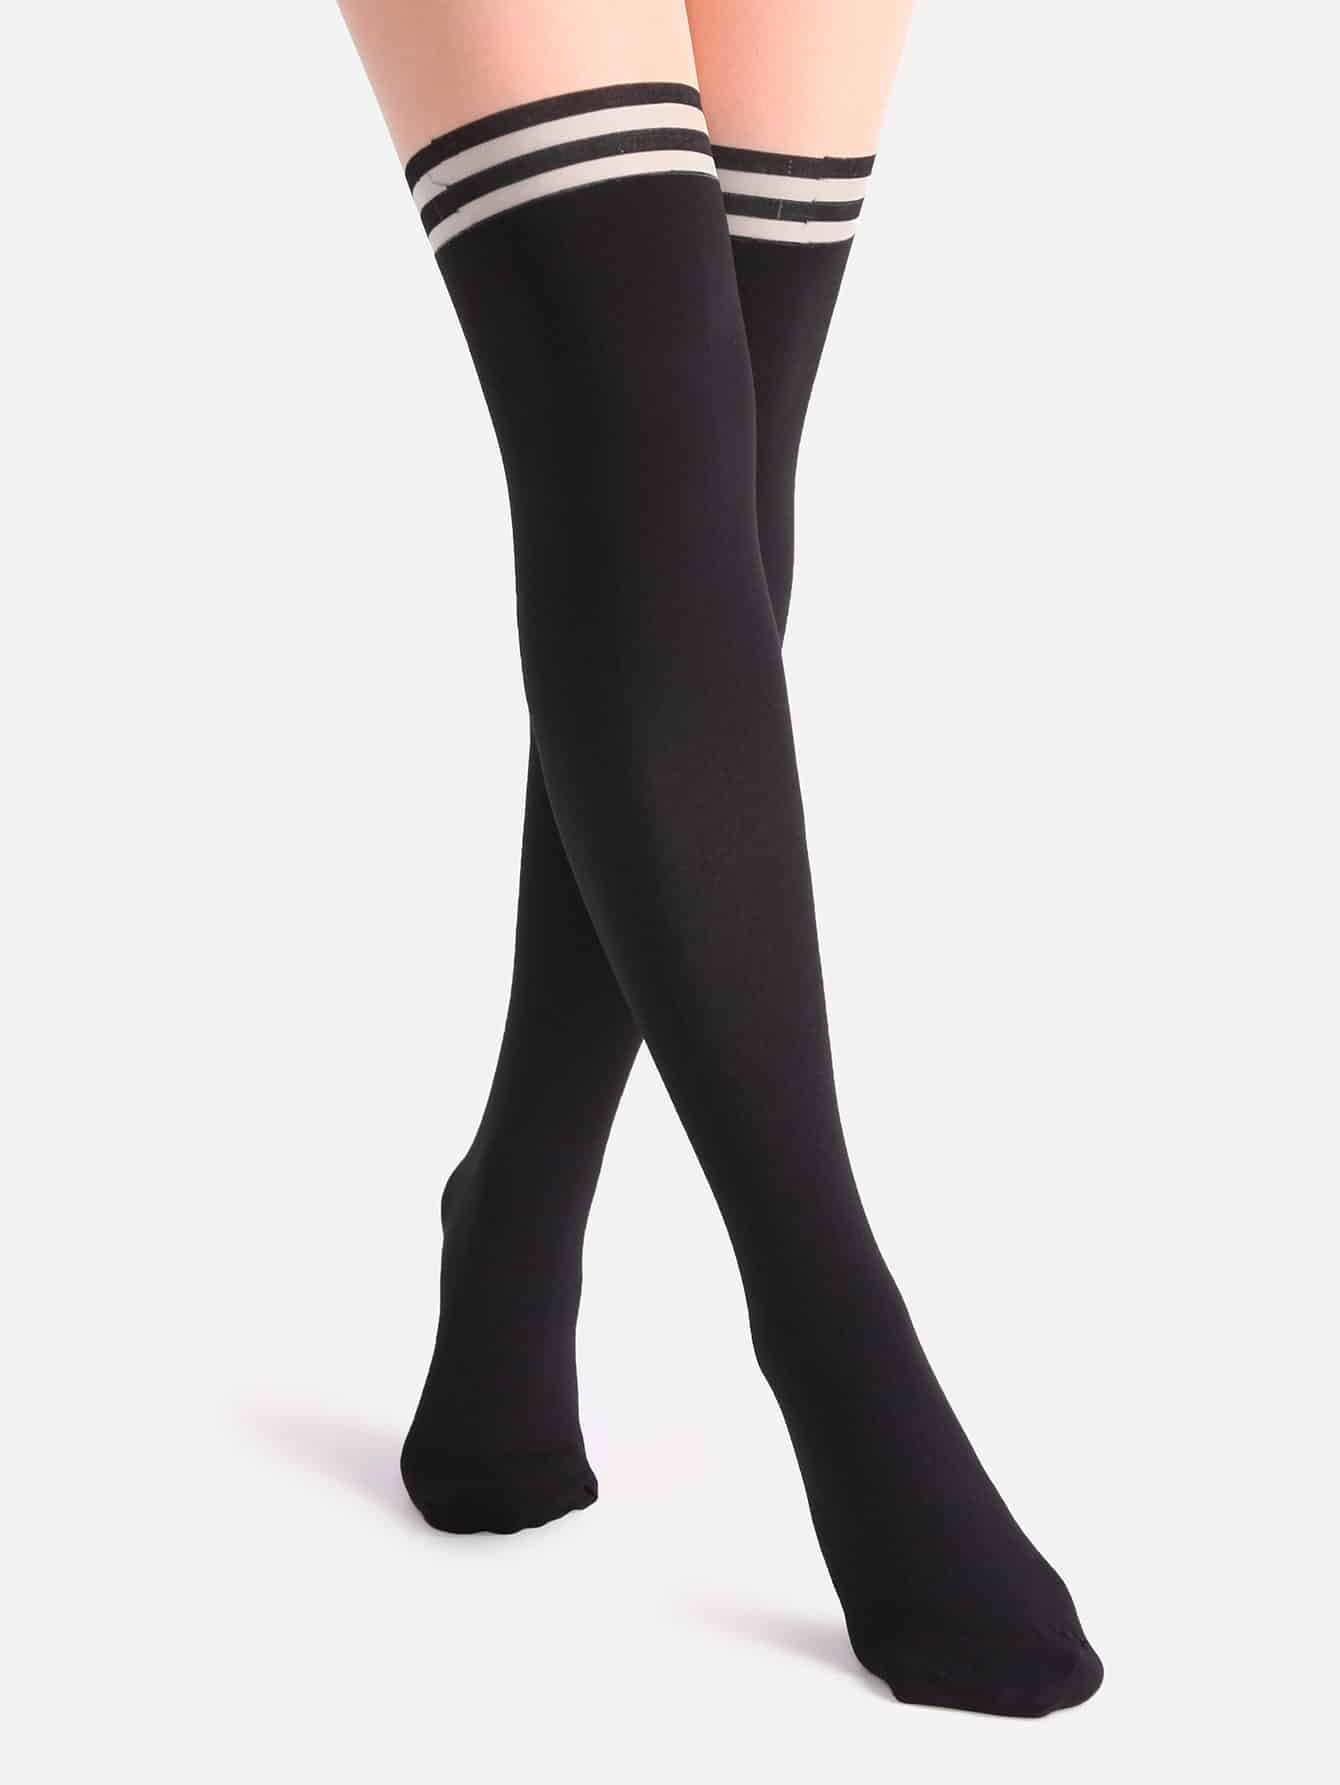 Black And Nude Patchwork Striped Pantyhose Stockings sock161102303